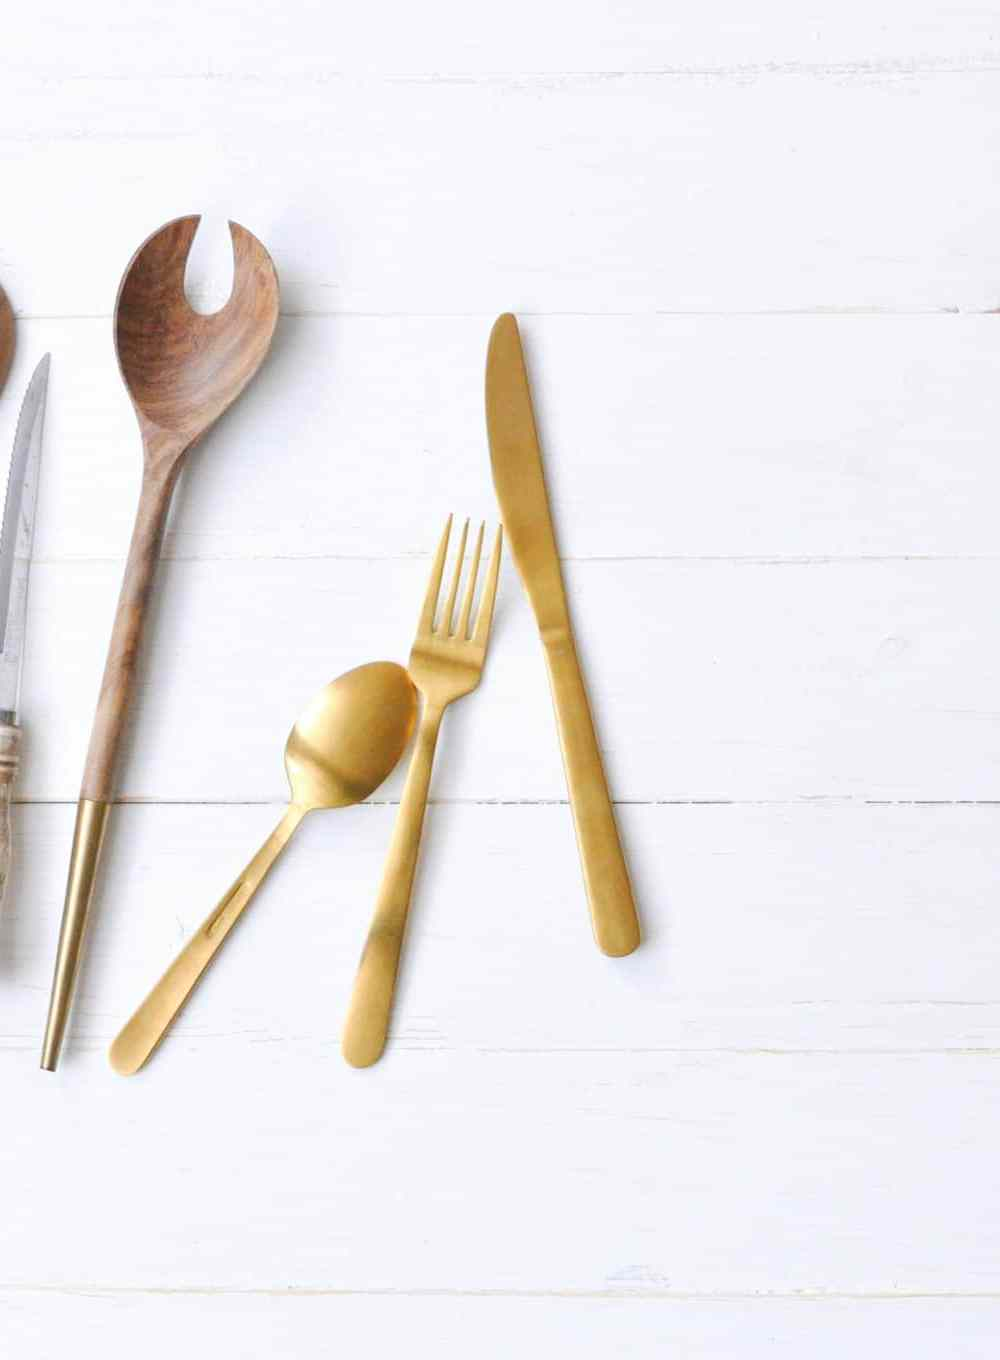 Utensils for Food Photography